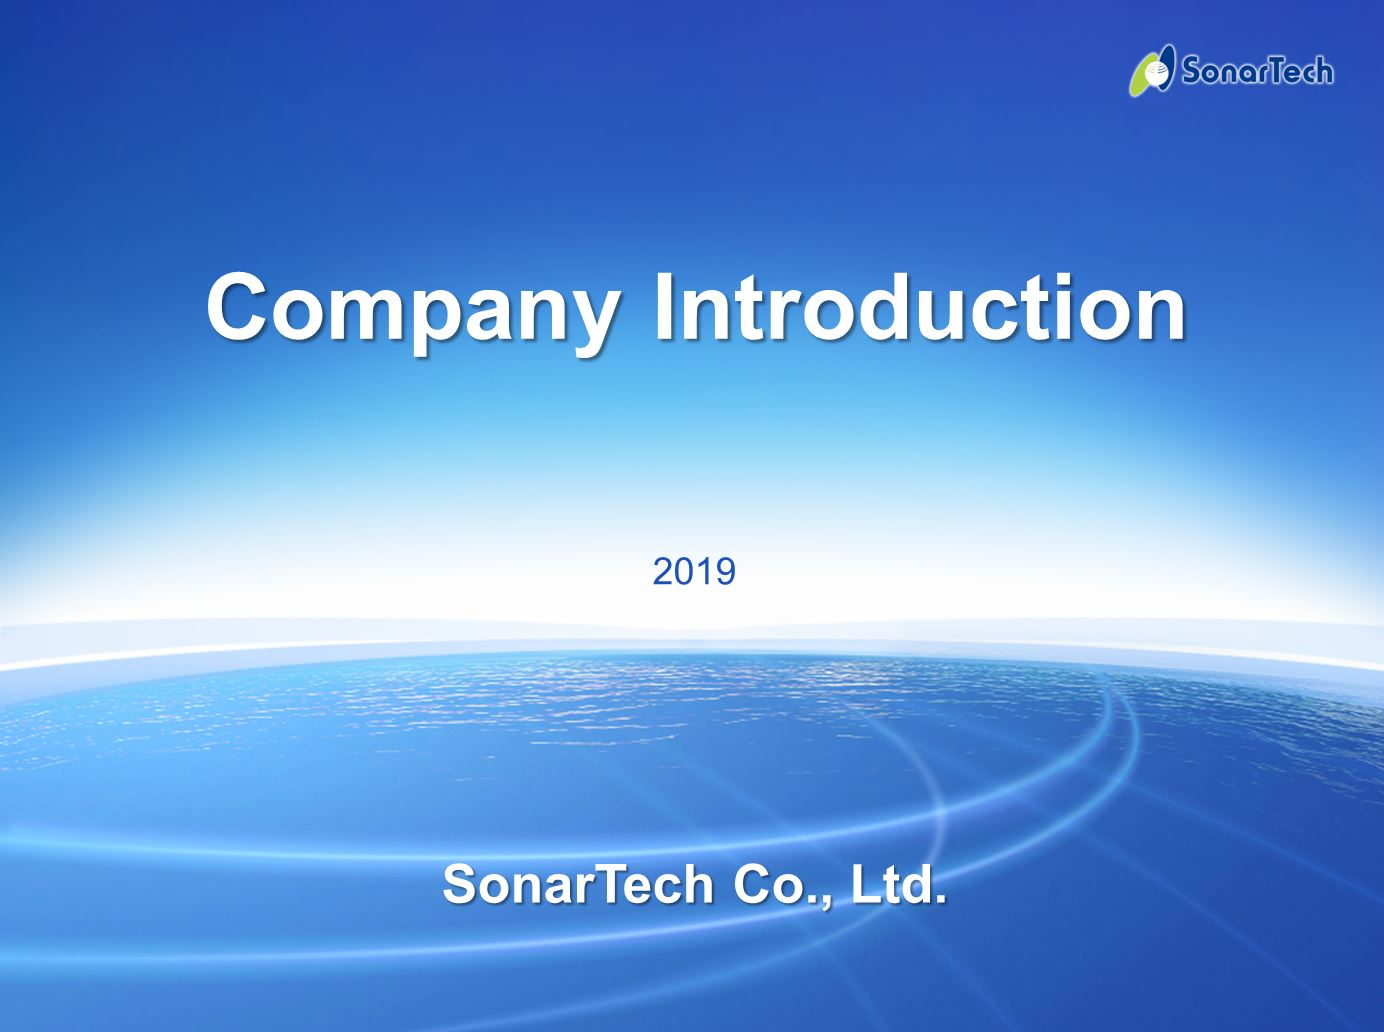 SonarTech Introduction Presentation